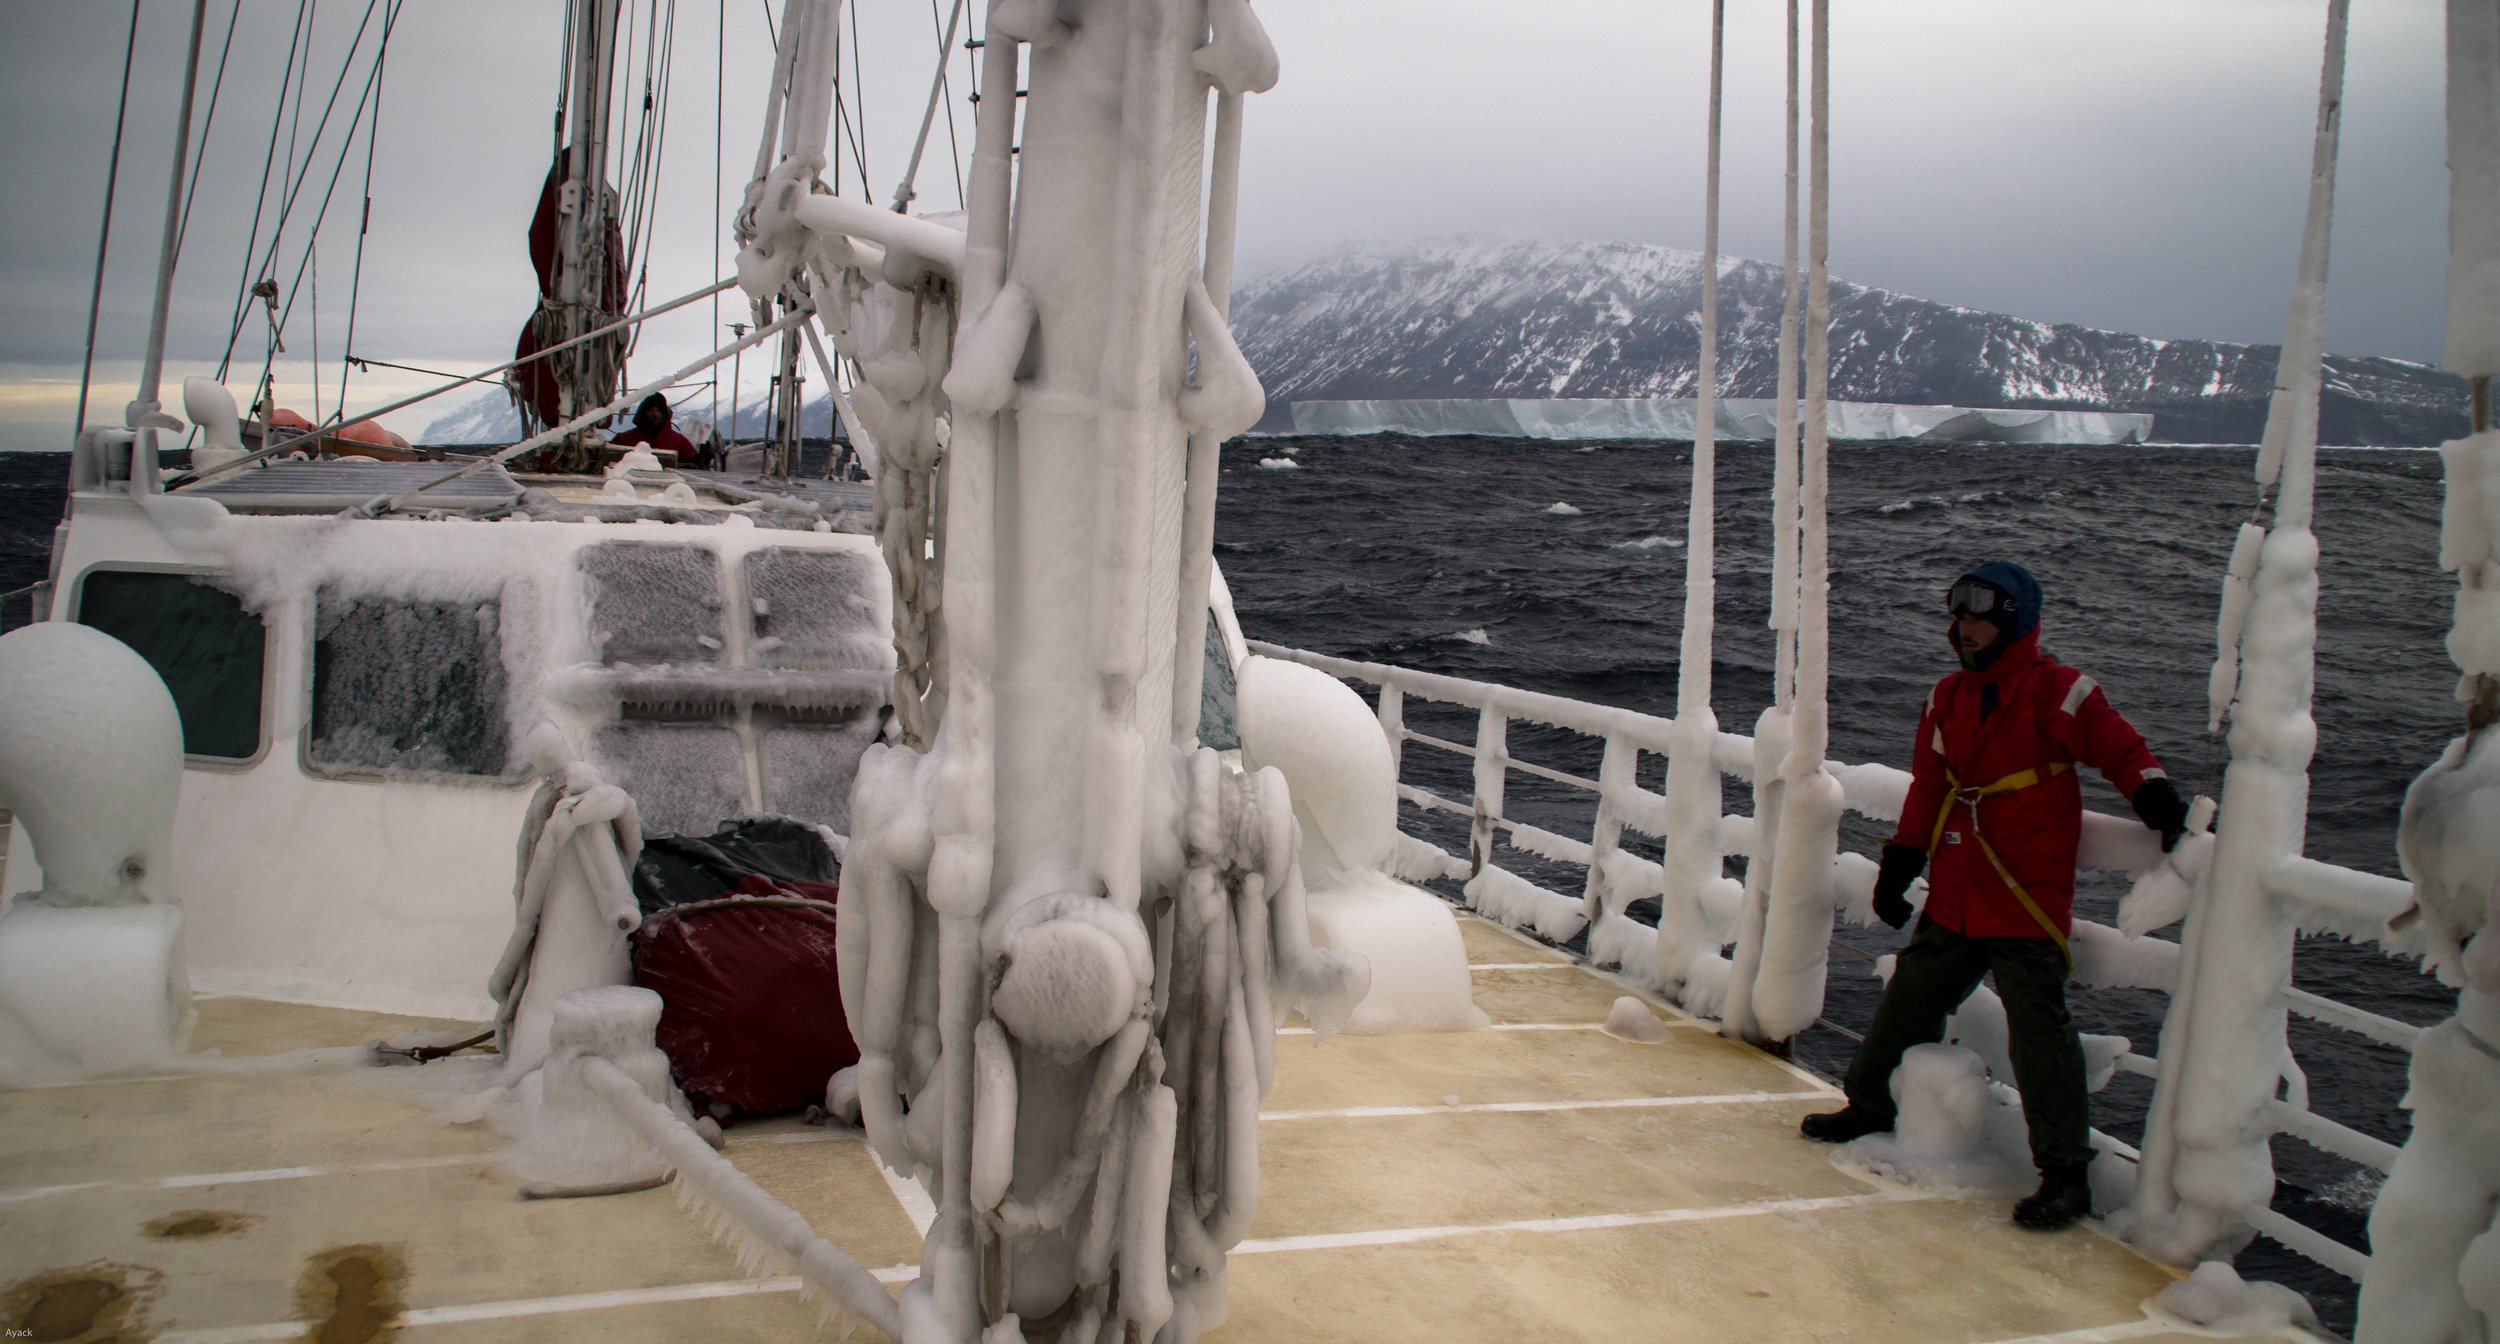 Sea Gypsies: The Far Side of the World - Danny on bow - Making our way through an ice-field at Cape Adare Antarctica at the mouth of the Ross Sea.